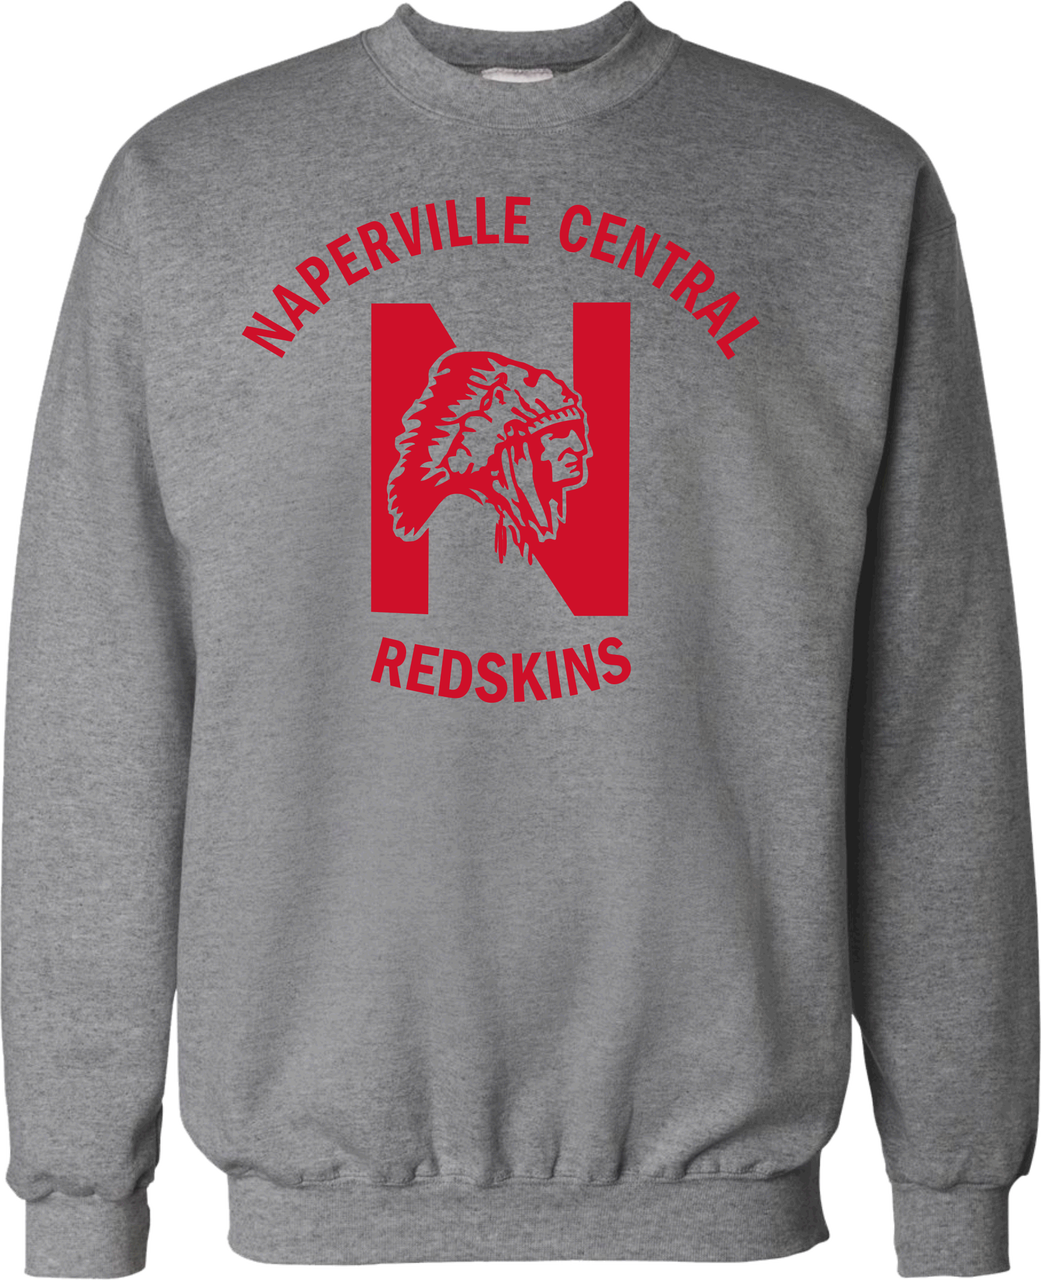 redskins crewneck sweatshirt